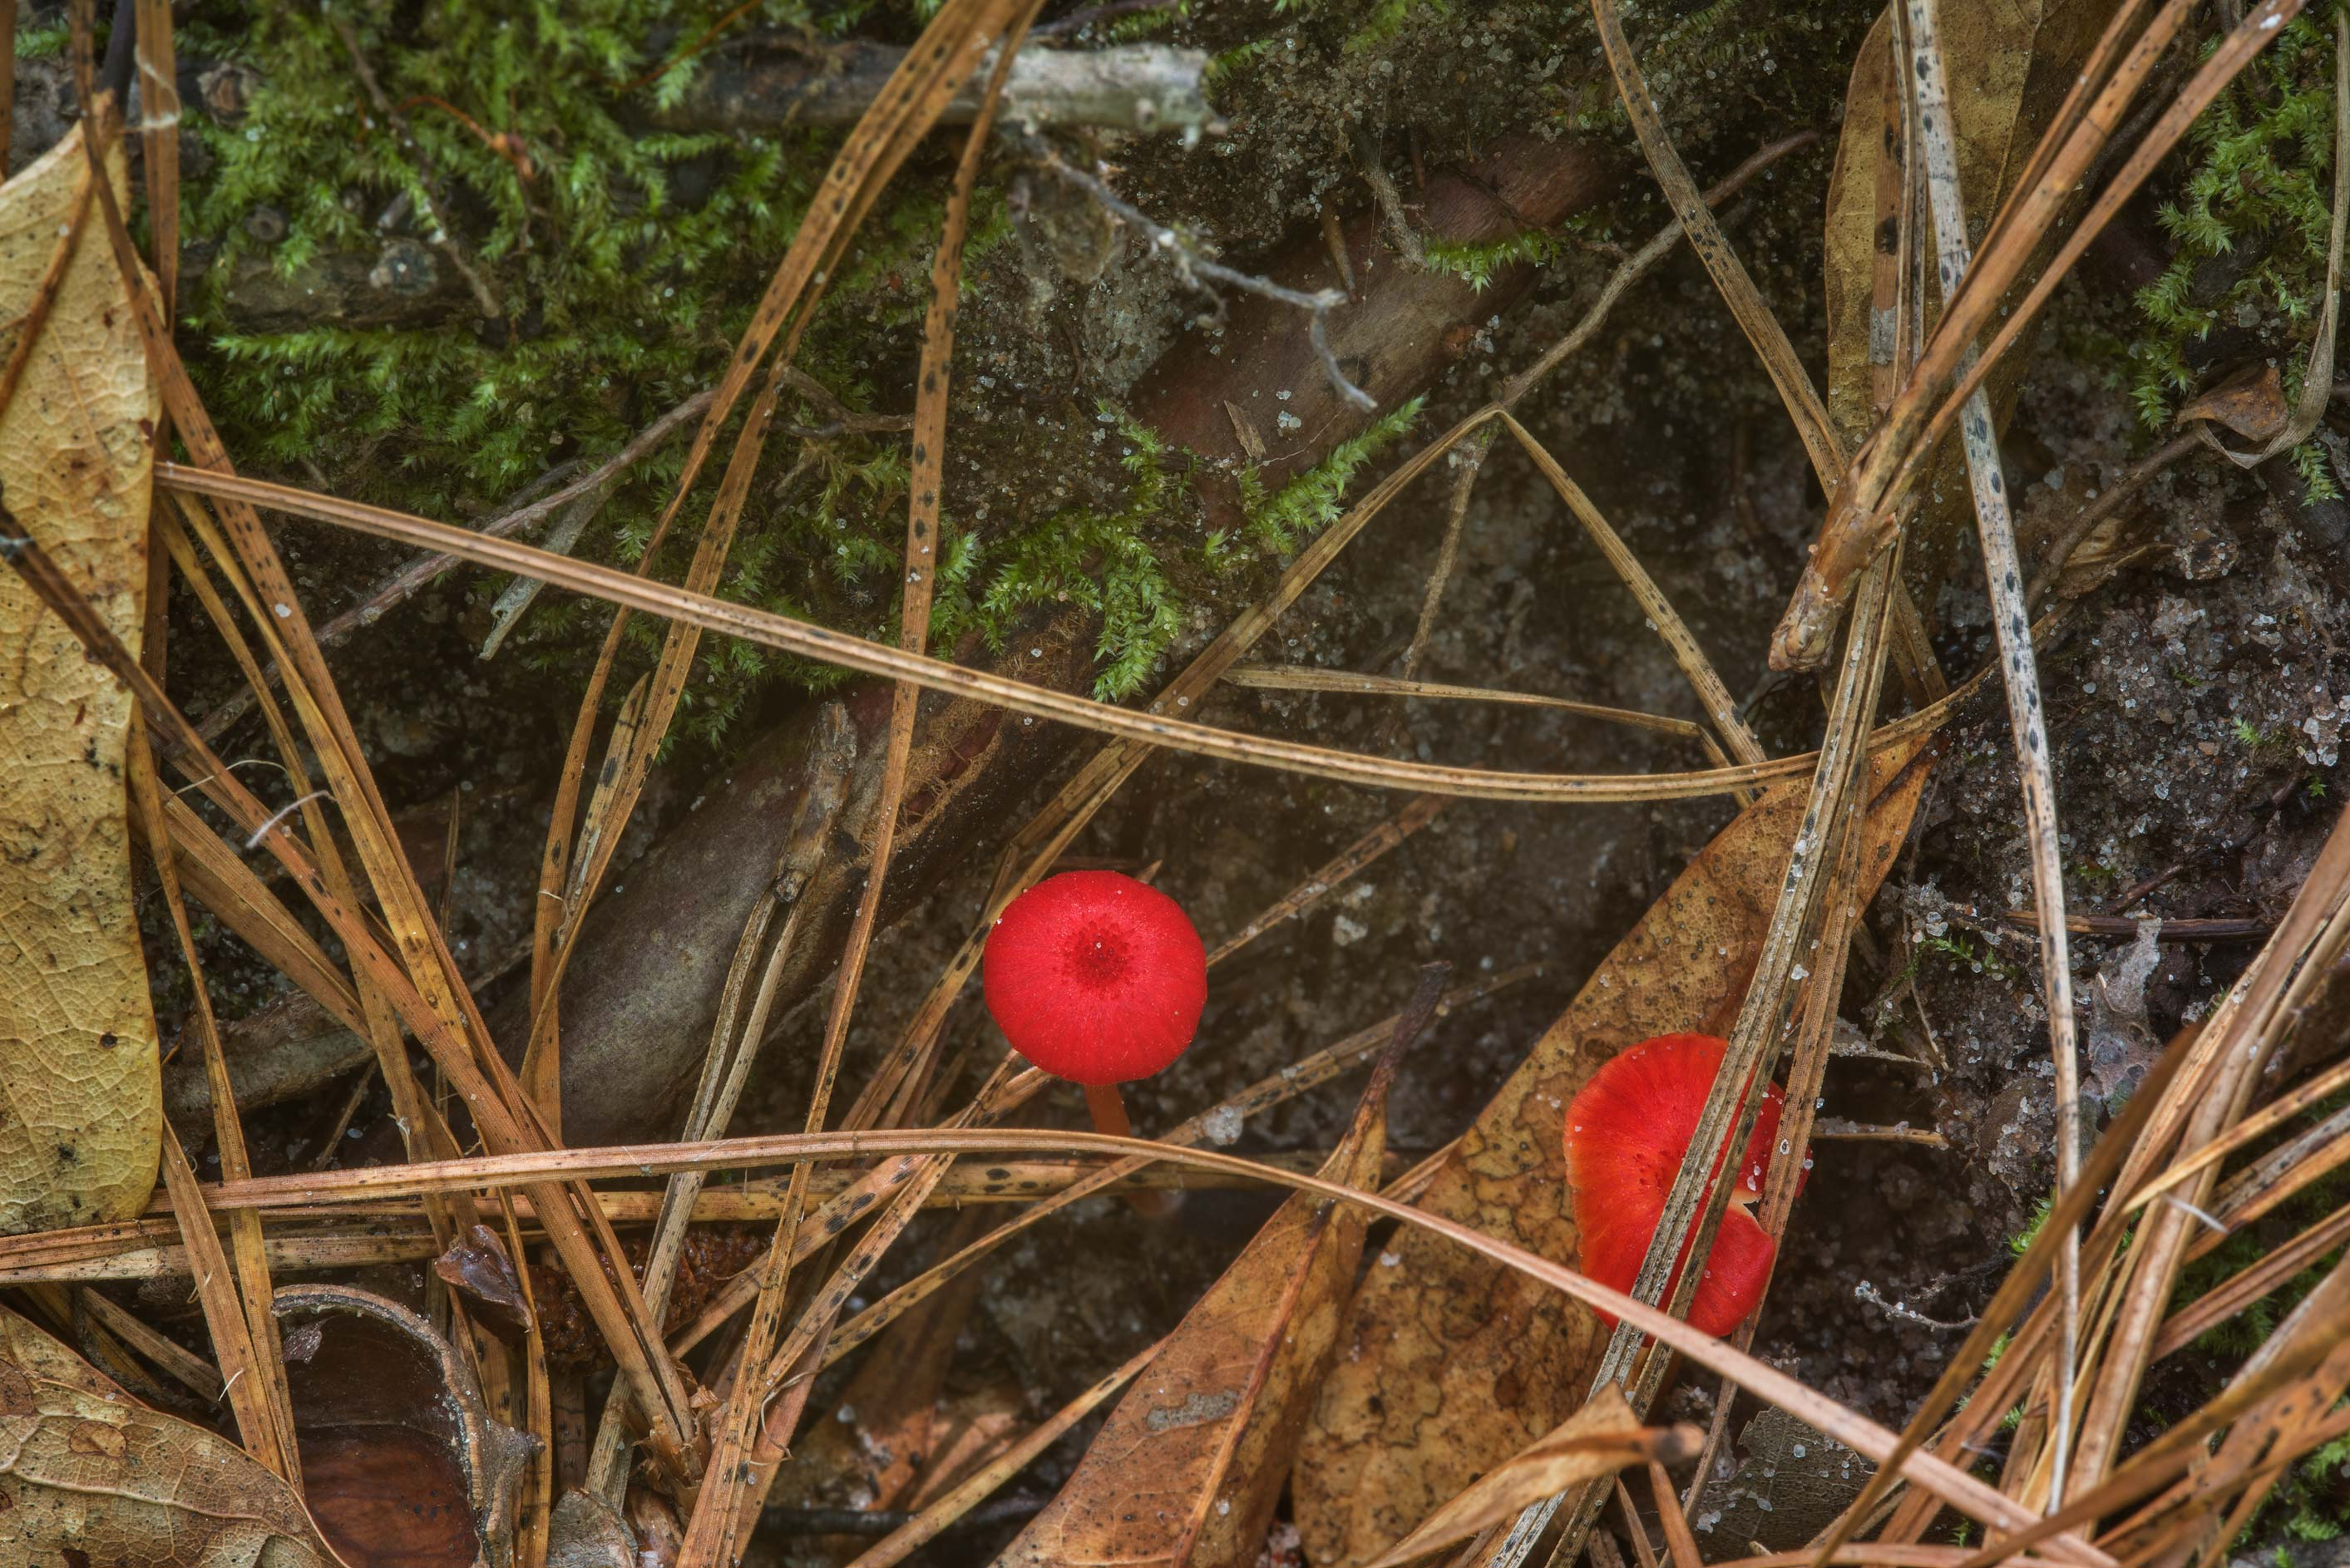 Tiny red waxcap mushrooms Hygrocybe subsect...National Forest near Huntsville, Texas